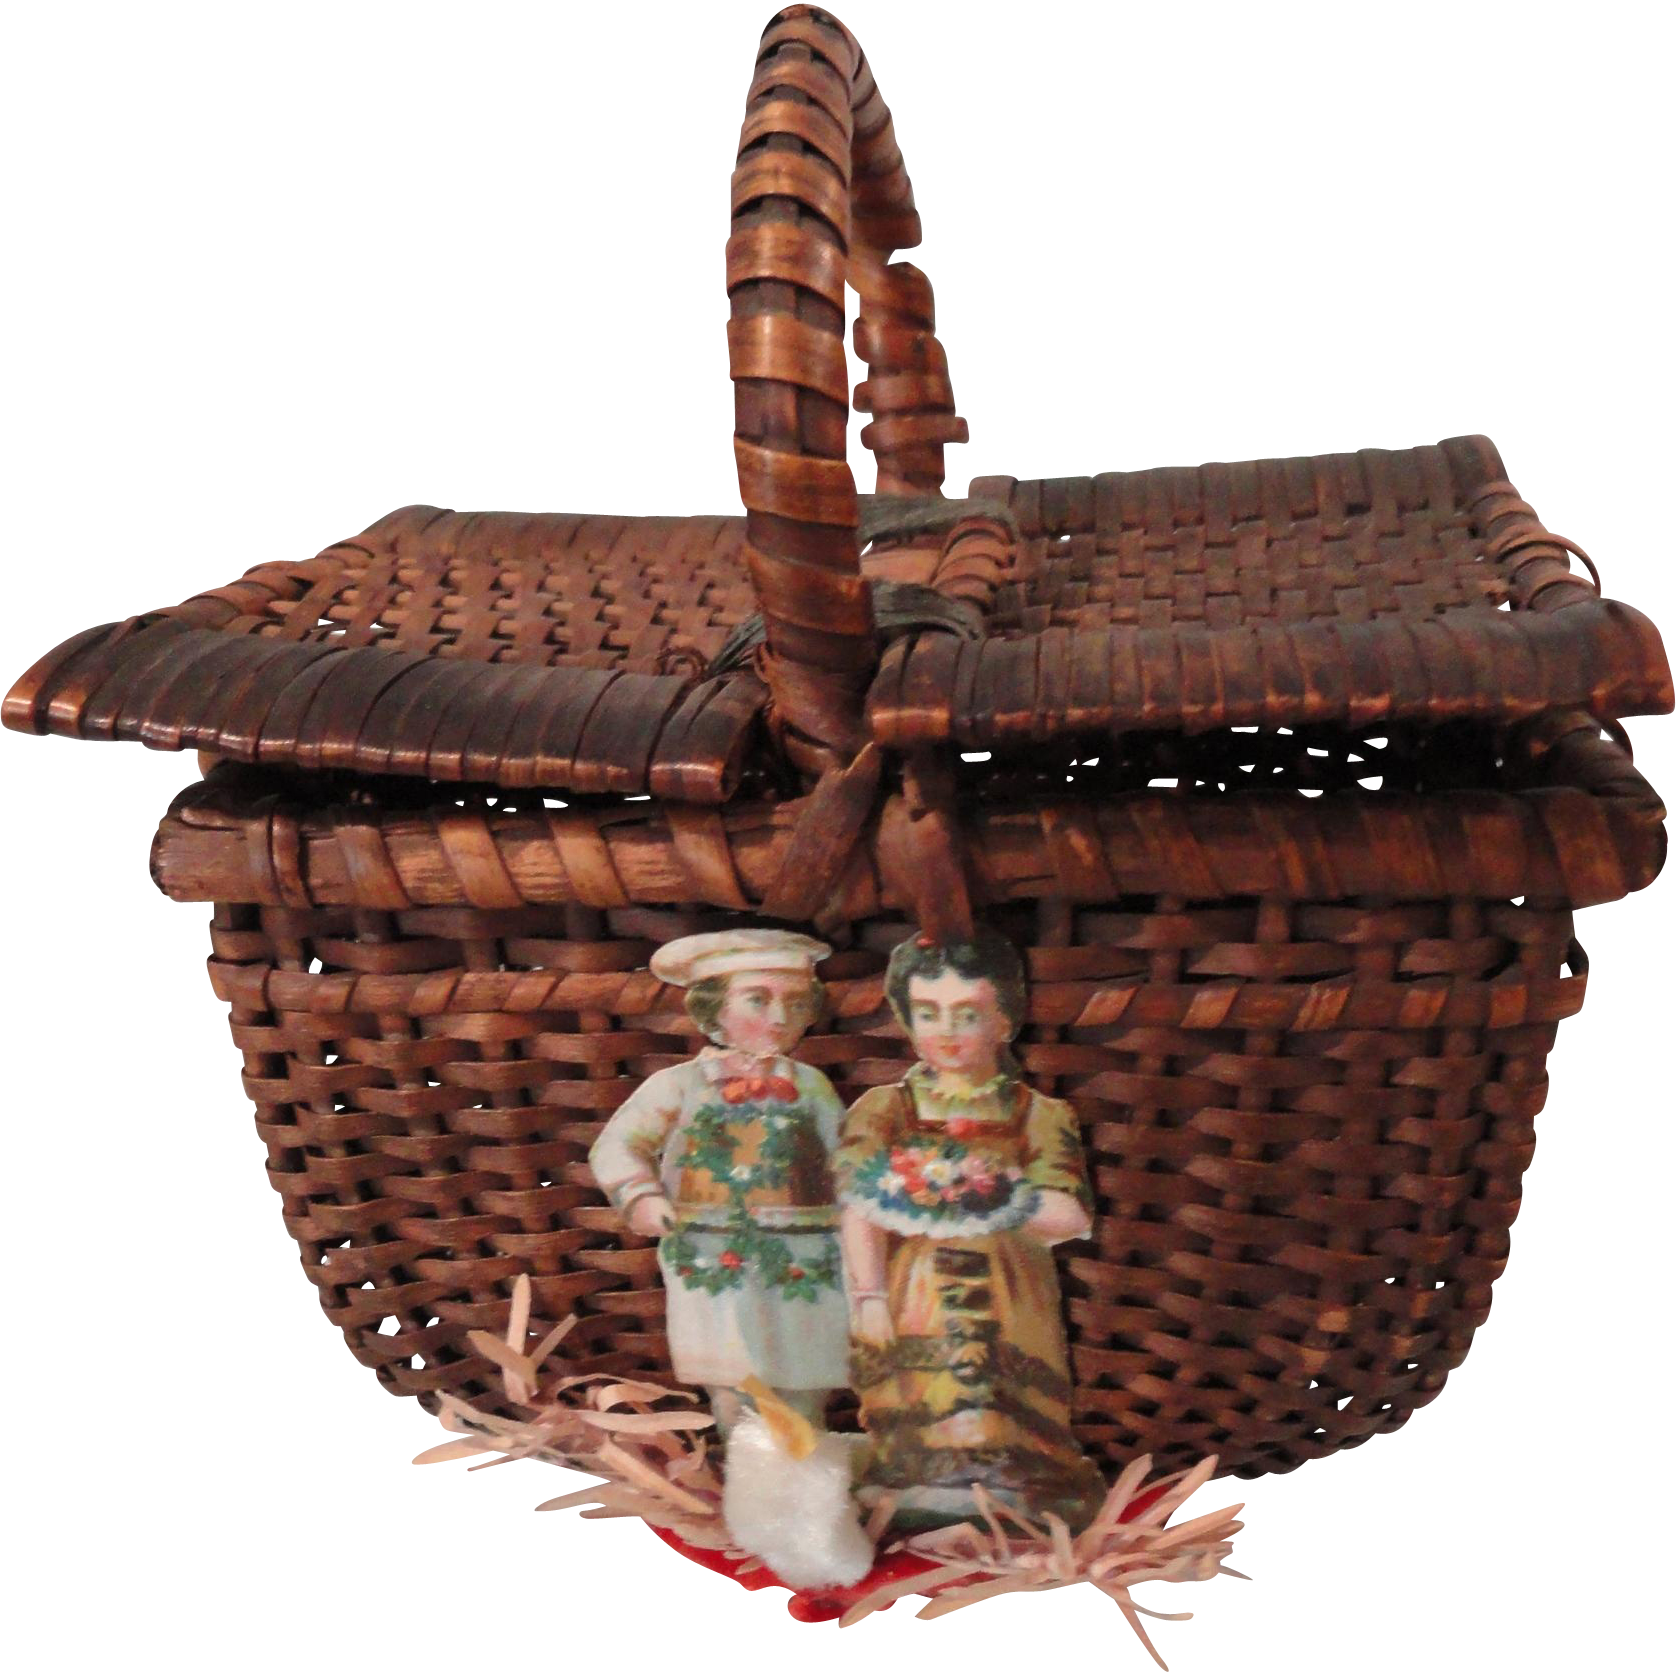 Wicker Picnic Basket W Christmas Decorations From